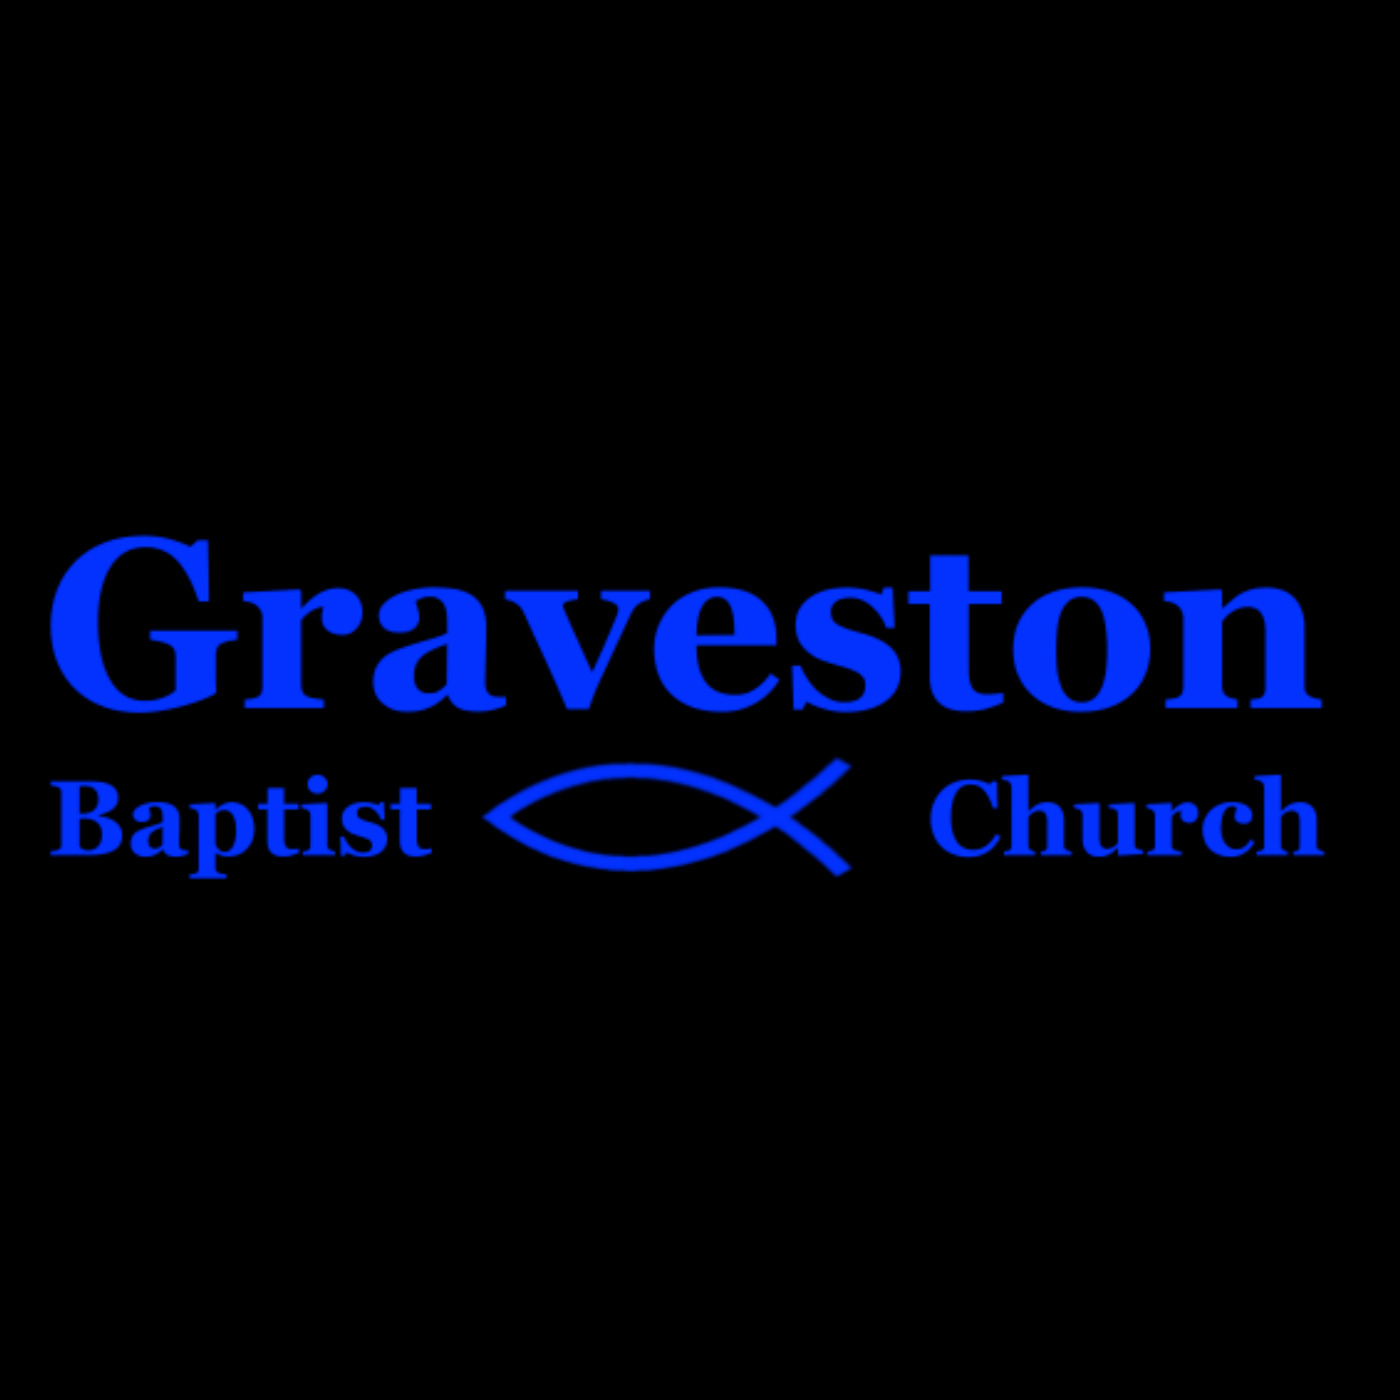 Graveston Baptist Church